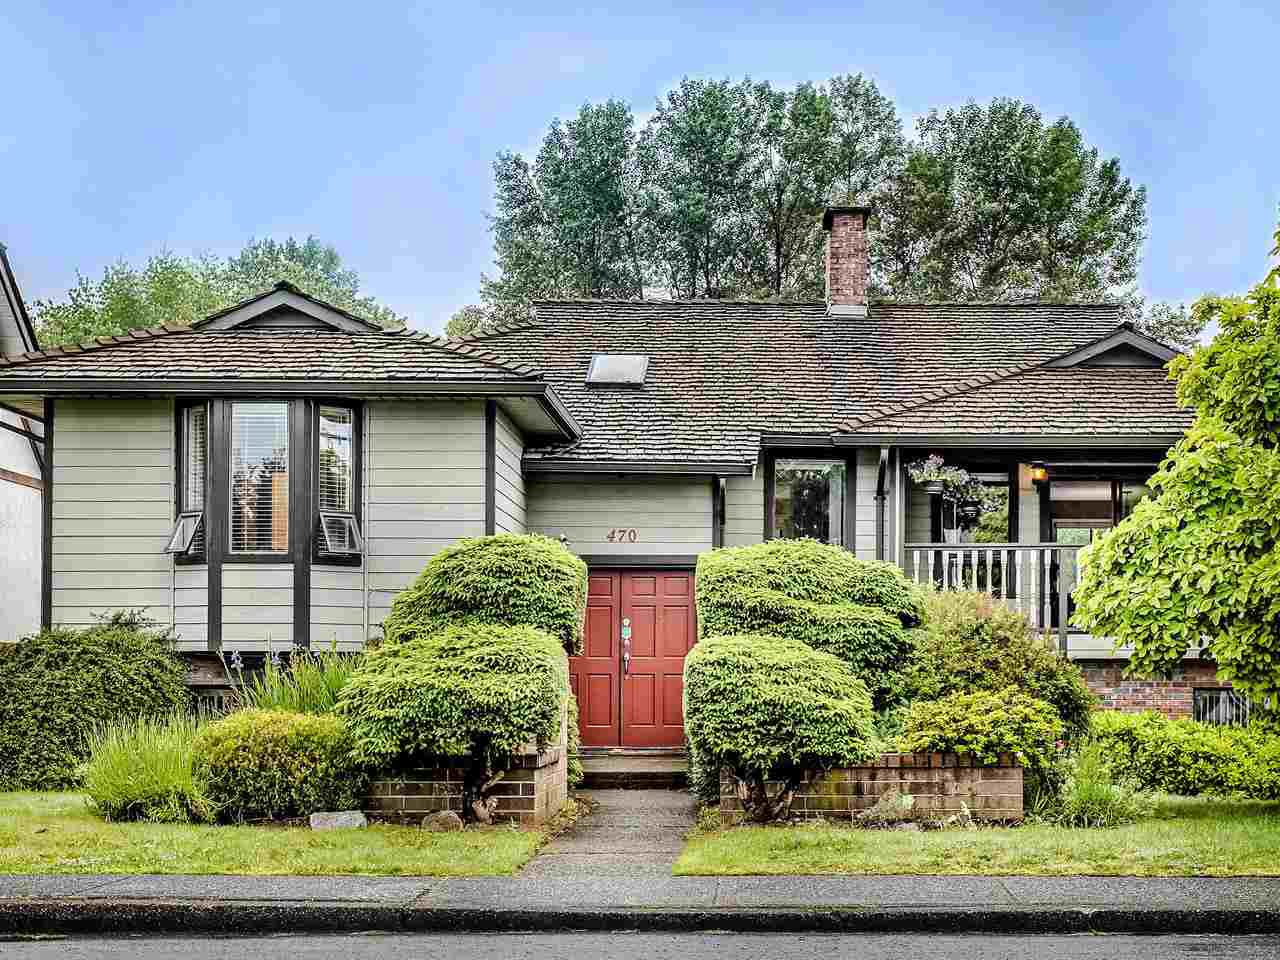 Main Photo: 470 CUMBERLAND Street in New Westminster: Fraserview NW House for sale : MLS®# R2464420